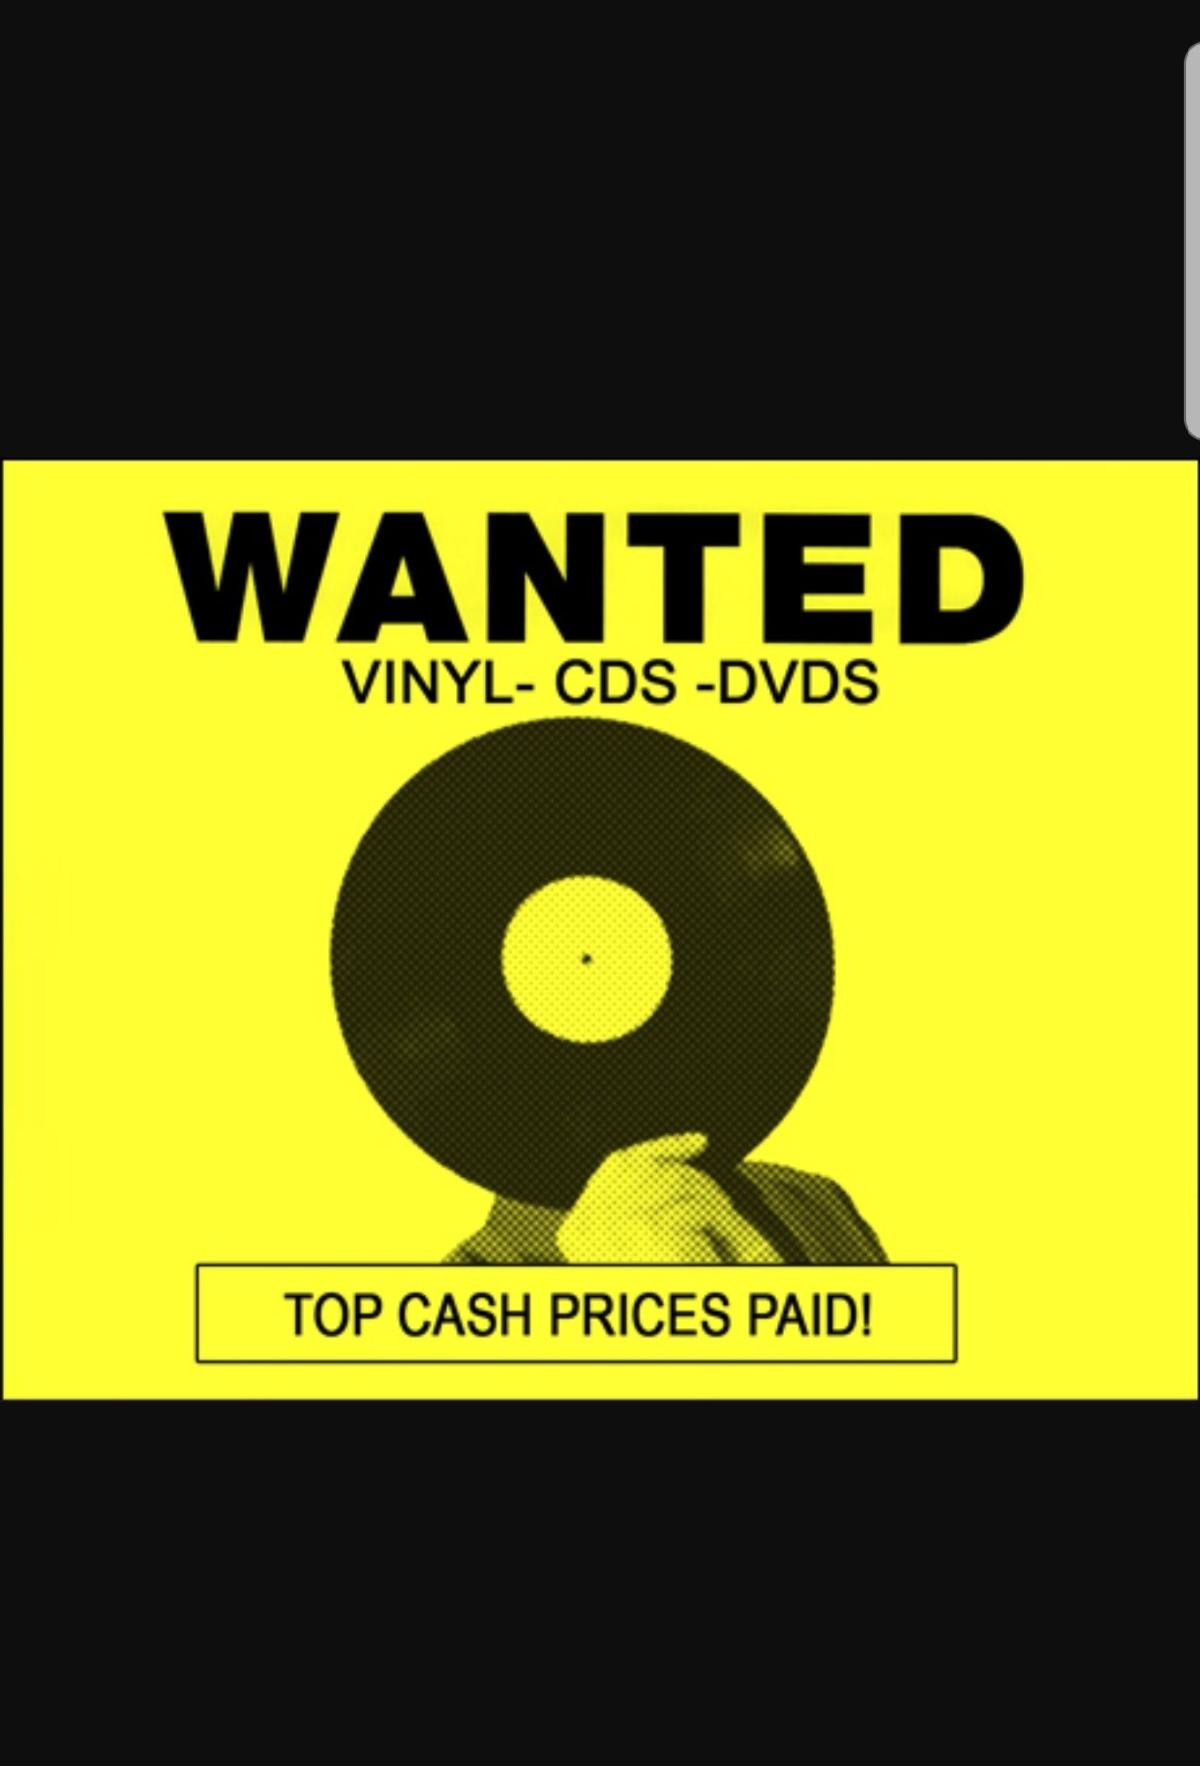 Old Records Most Wanted